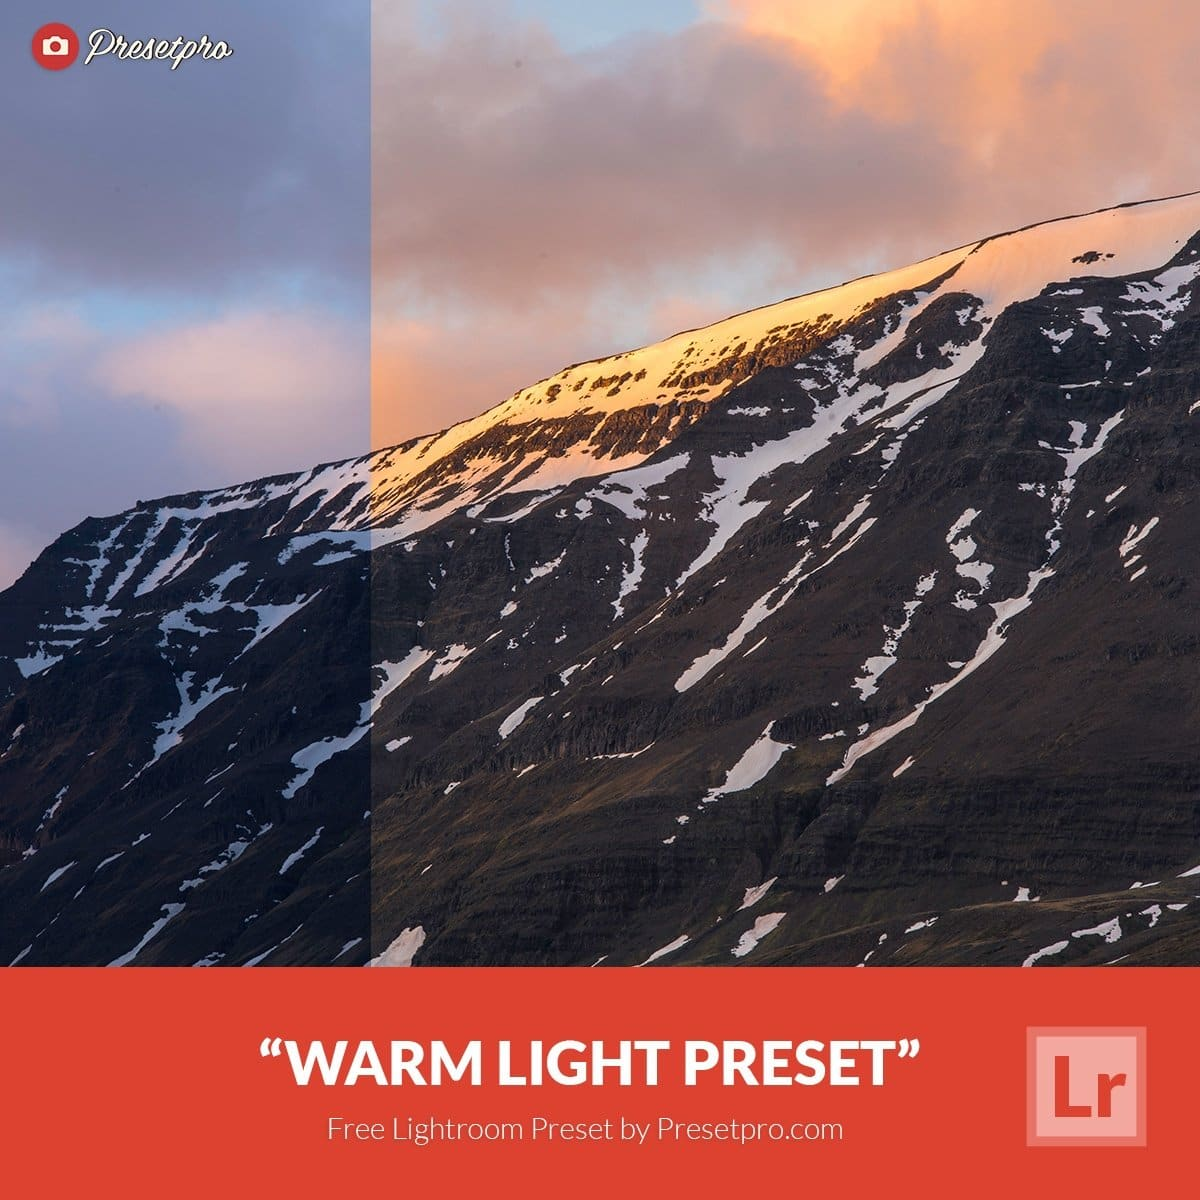 Free-Lightroom-Preset-Warm-Light-Presetpro.com